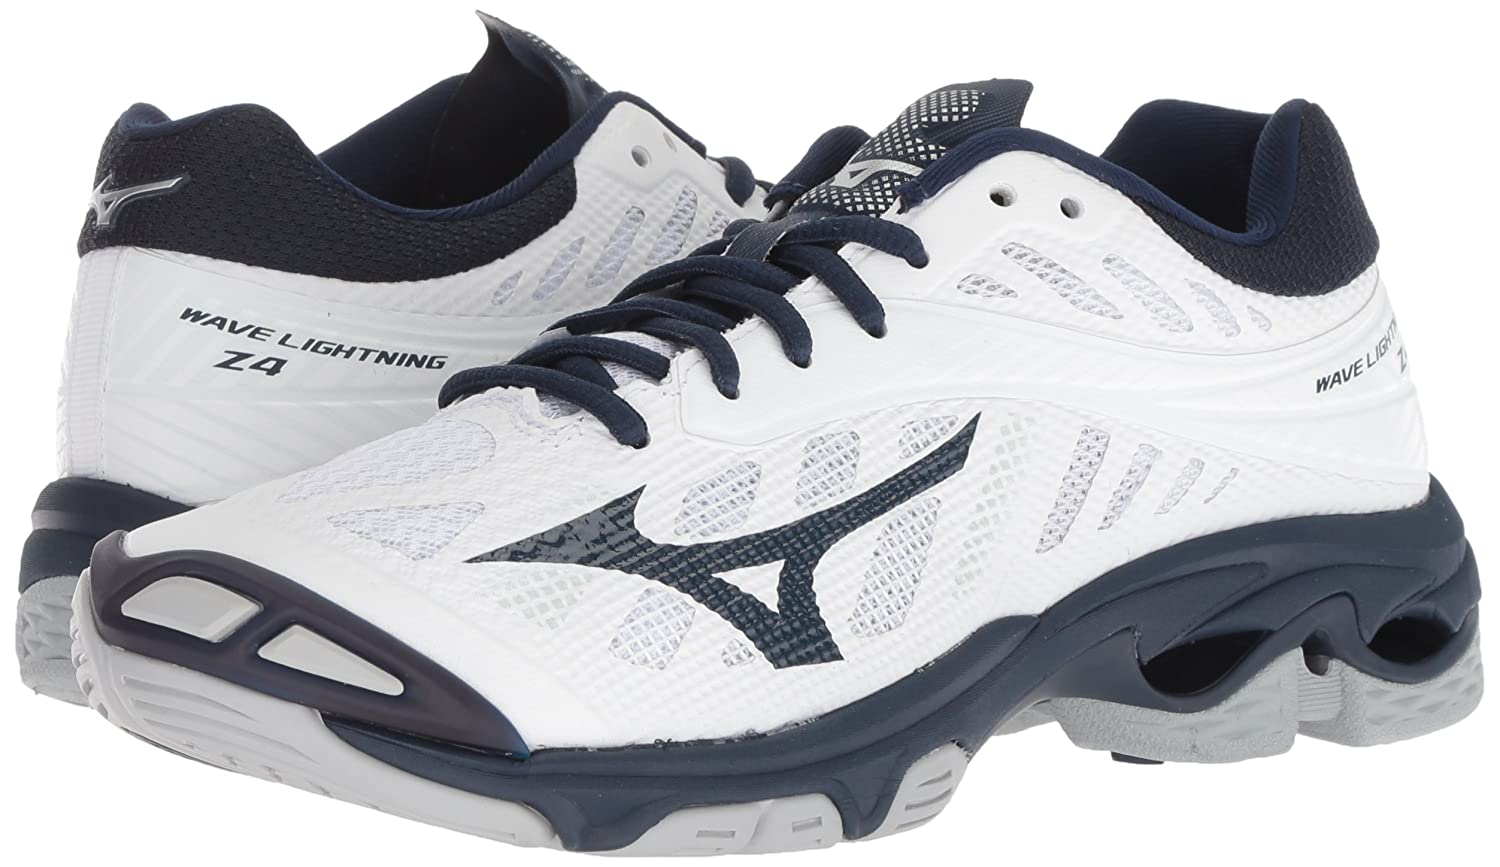 mizuno womens volleyball shoes size 8 x 2 inch quality kit